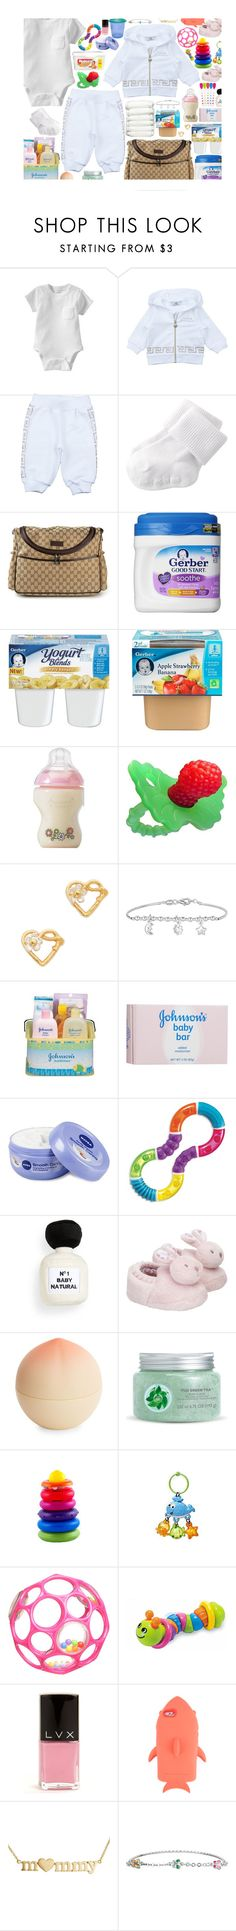 """""""Promises • Jhene Aiko"""" by j-ungle-x ❤ liked on Polyvore featuring Old Navy, Young Versace, BOBBY, Gucci, Gerber, FRUIT, Alex Monroe, Johnson's Baby, Nivea and H&M"""